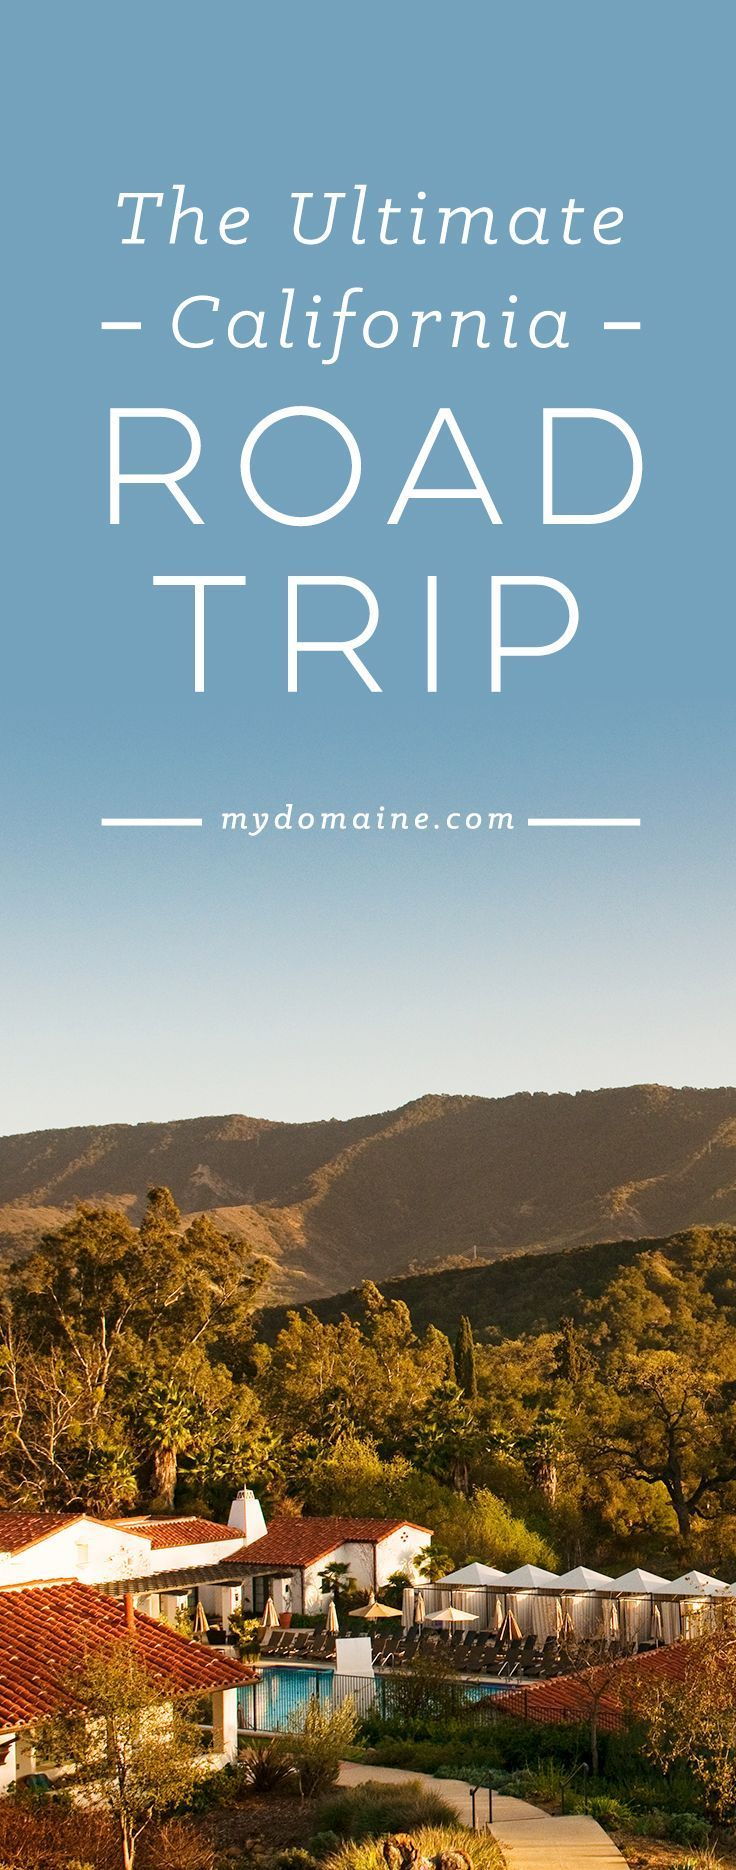 Your Guide to the Ultimate California Road Trip | Trips ...